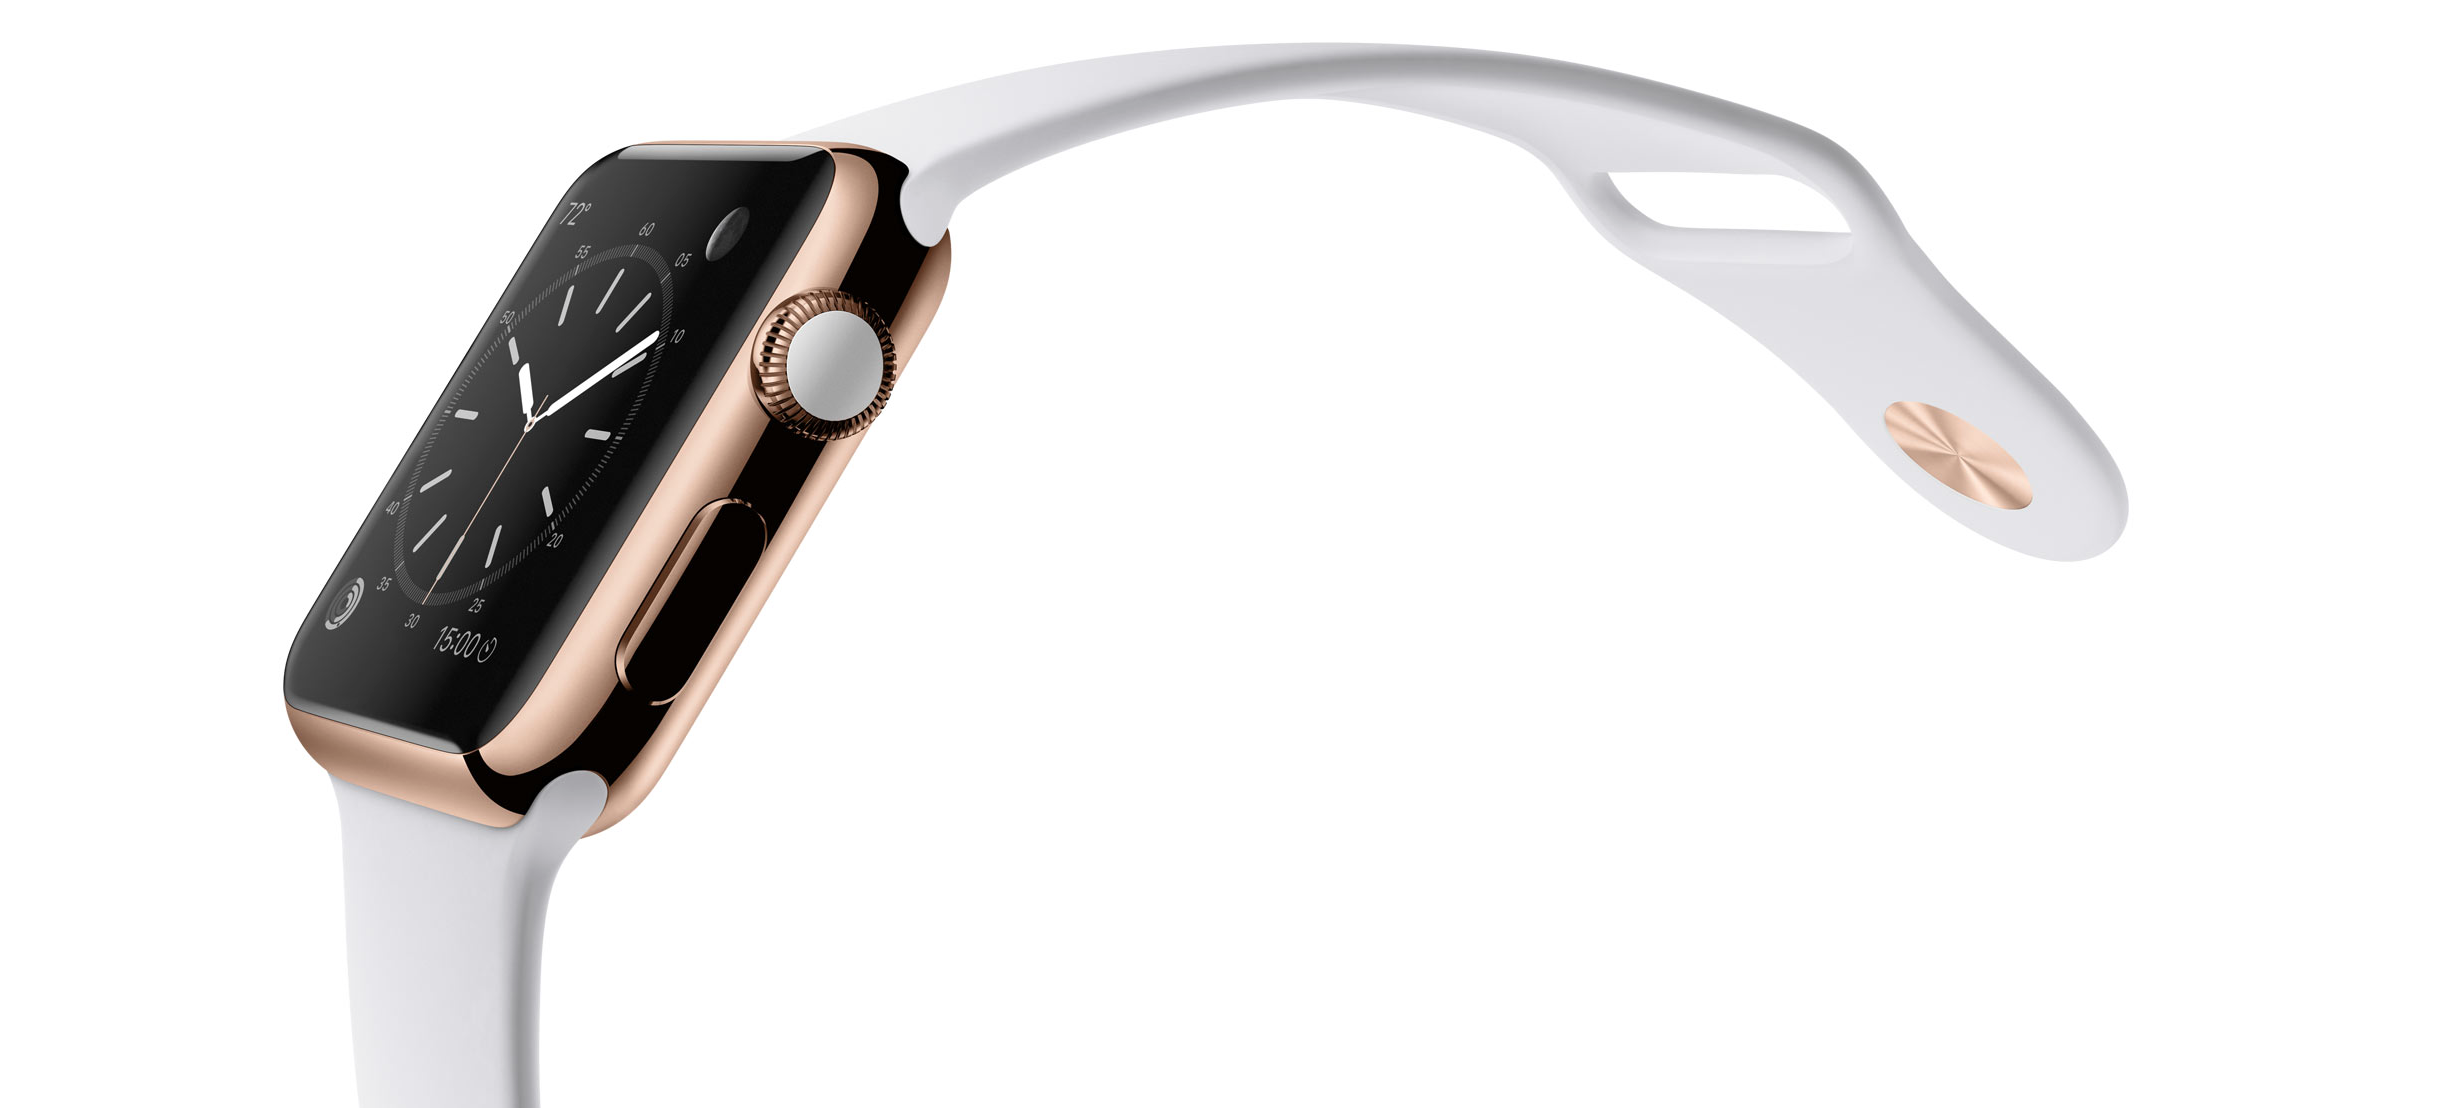 Op-Ed: Did the iPhone 6 and Apple Watch event live up to the hype?